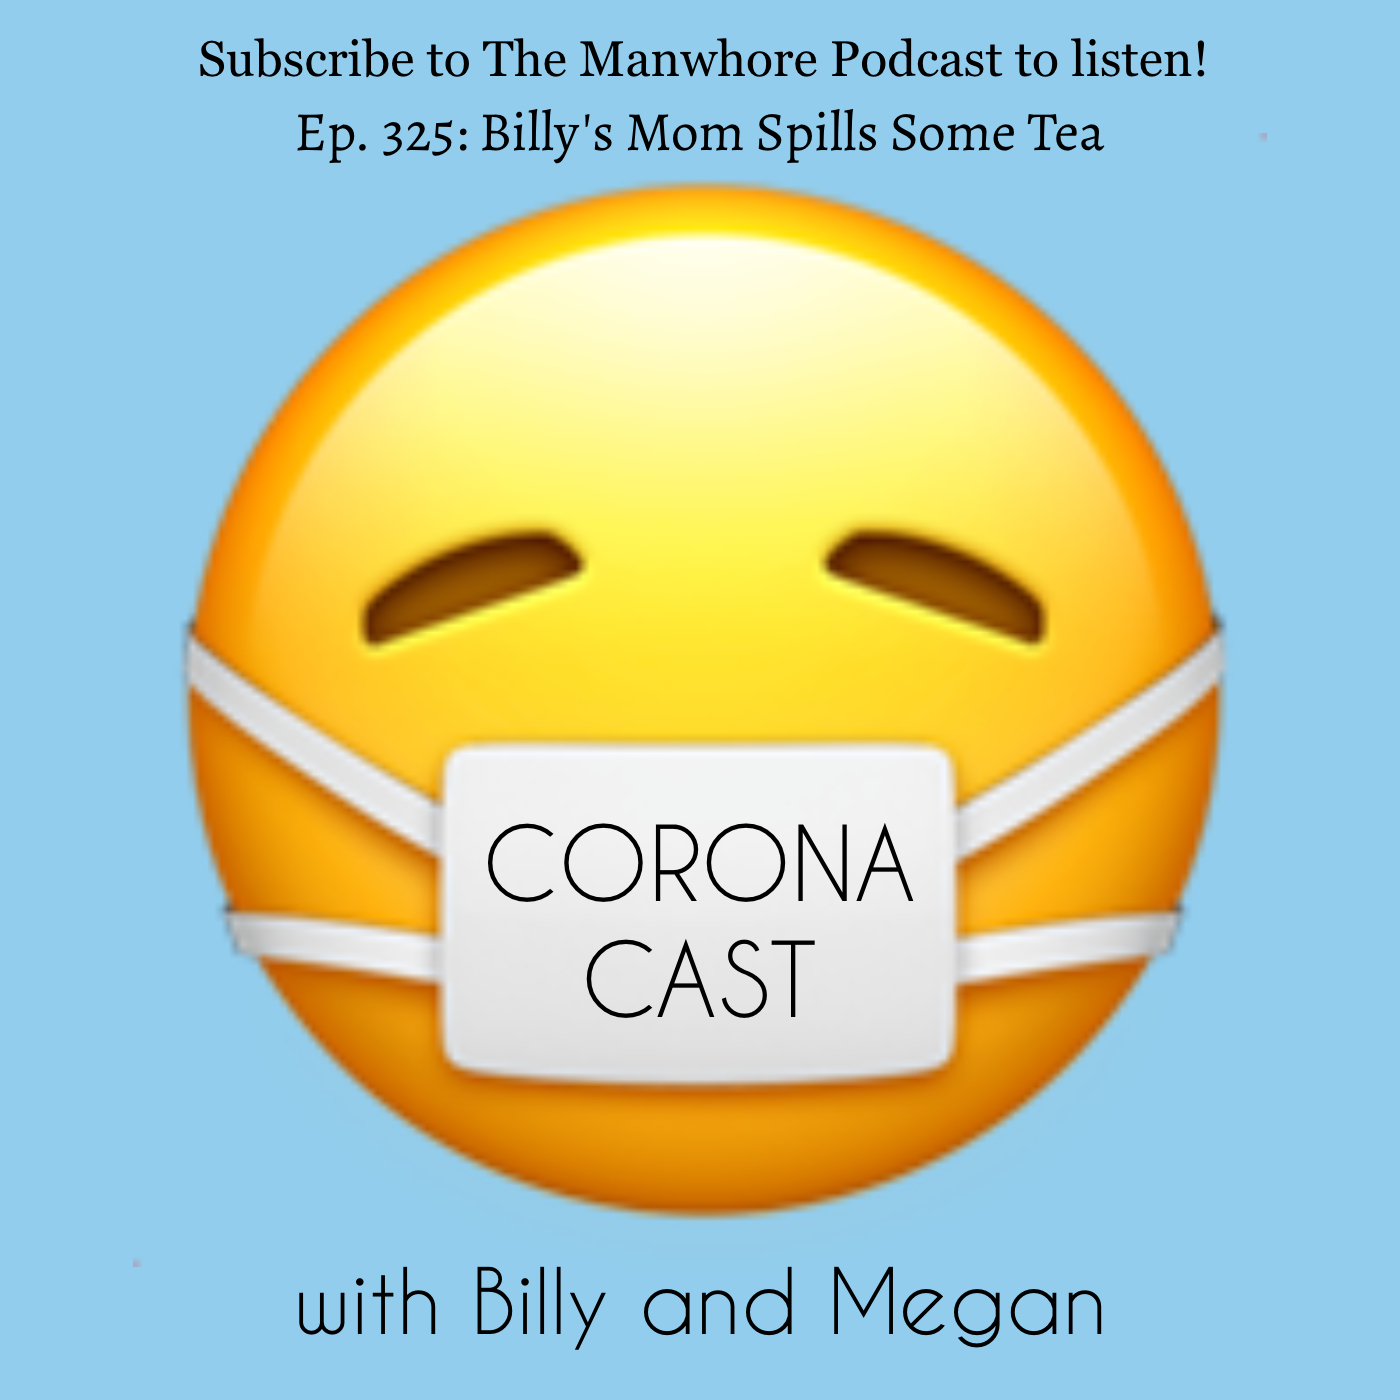 The Manwhore Podcast: A Sex-Positive Quest - Ep. 325: Corona Cast Part 8 - Billy's Mom Spills Some Tea